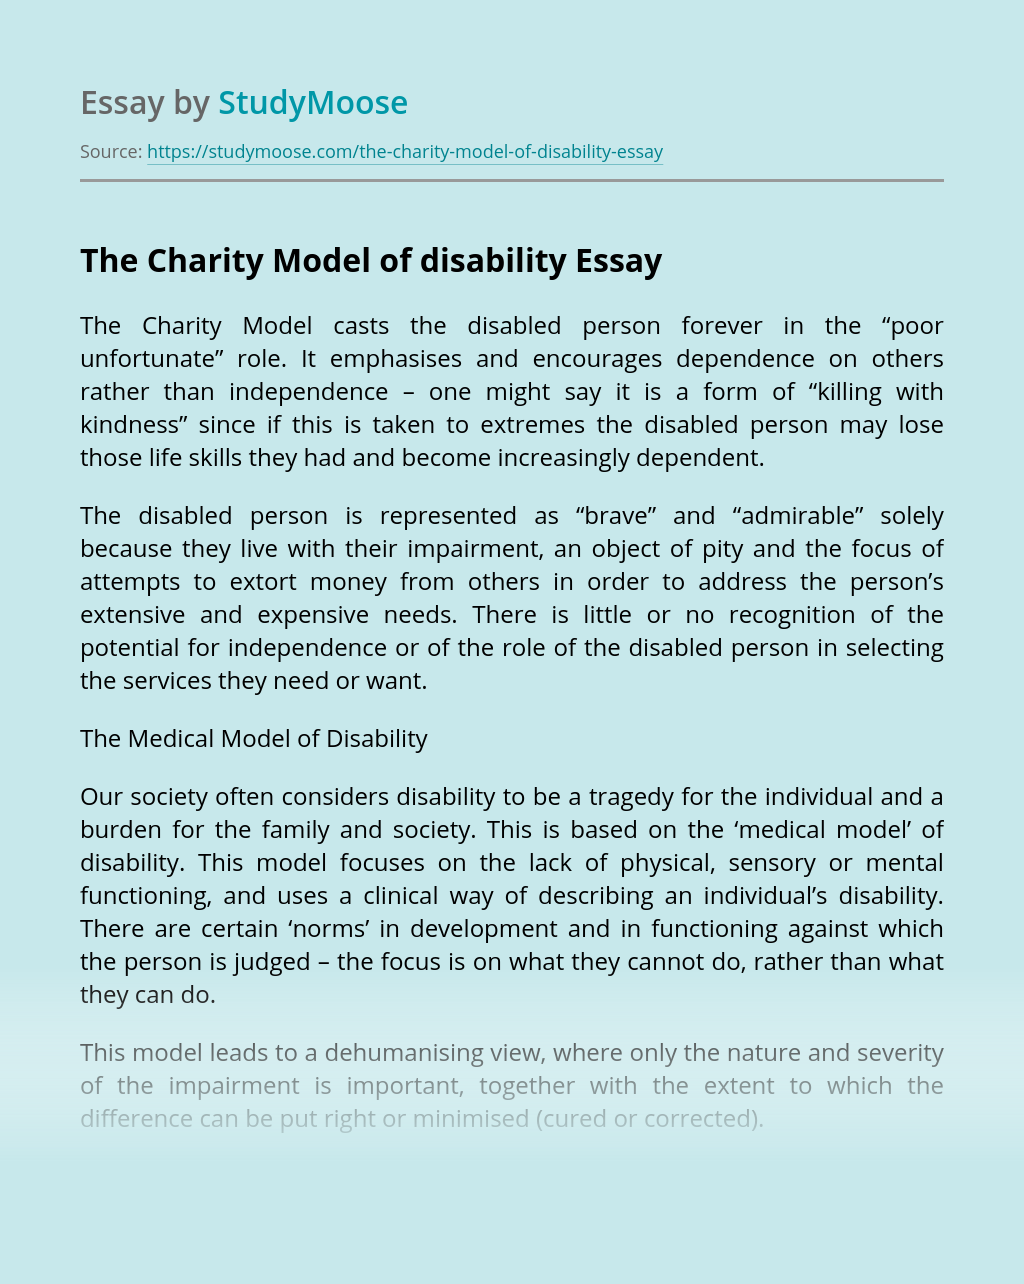 The Charity Model of disability